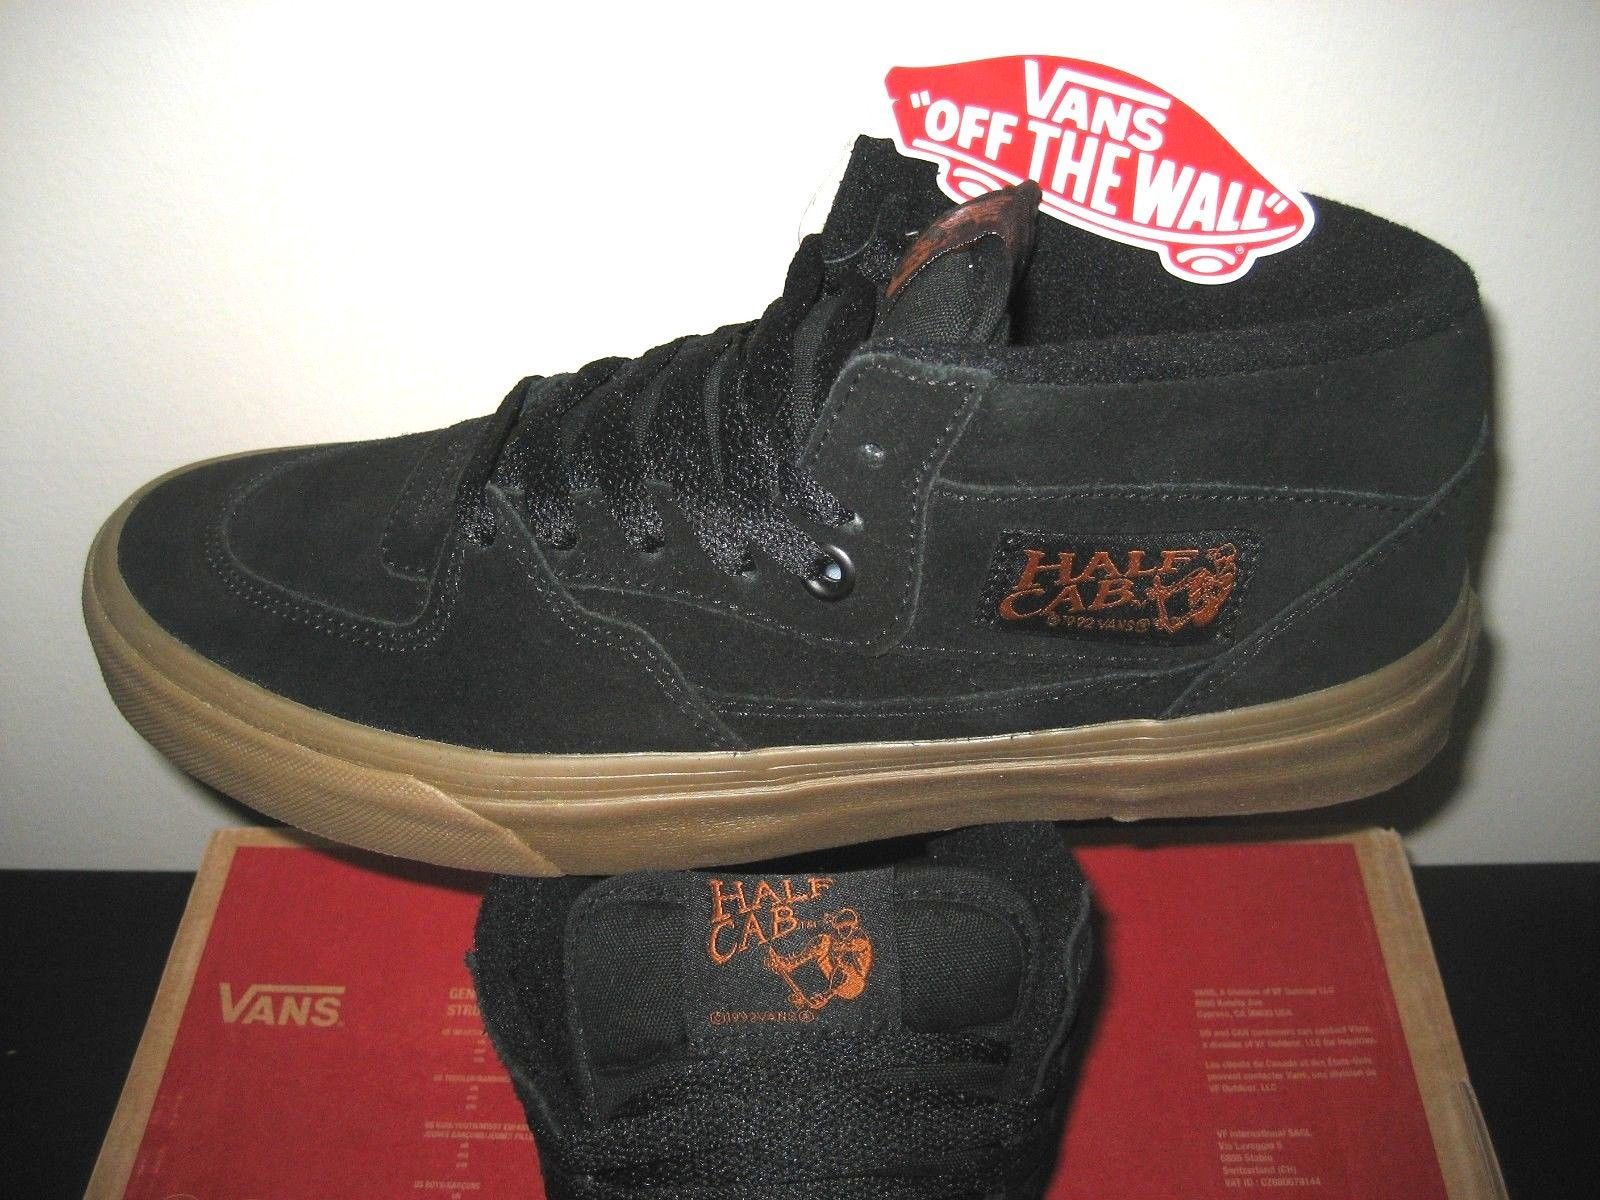 85d96f435b9 57. 57. Previous. Vans Mens Half Cab Gum Black Black Suede Canvas Skate  Shoes Size 7 Classic NWT